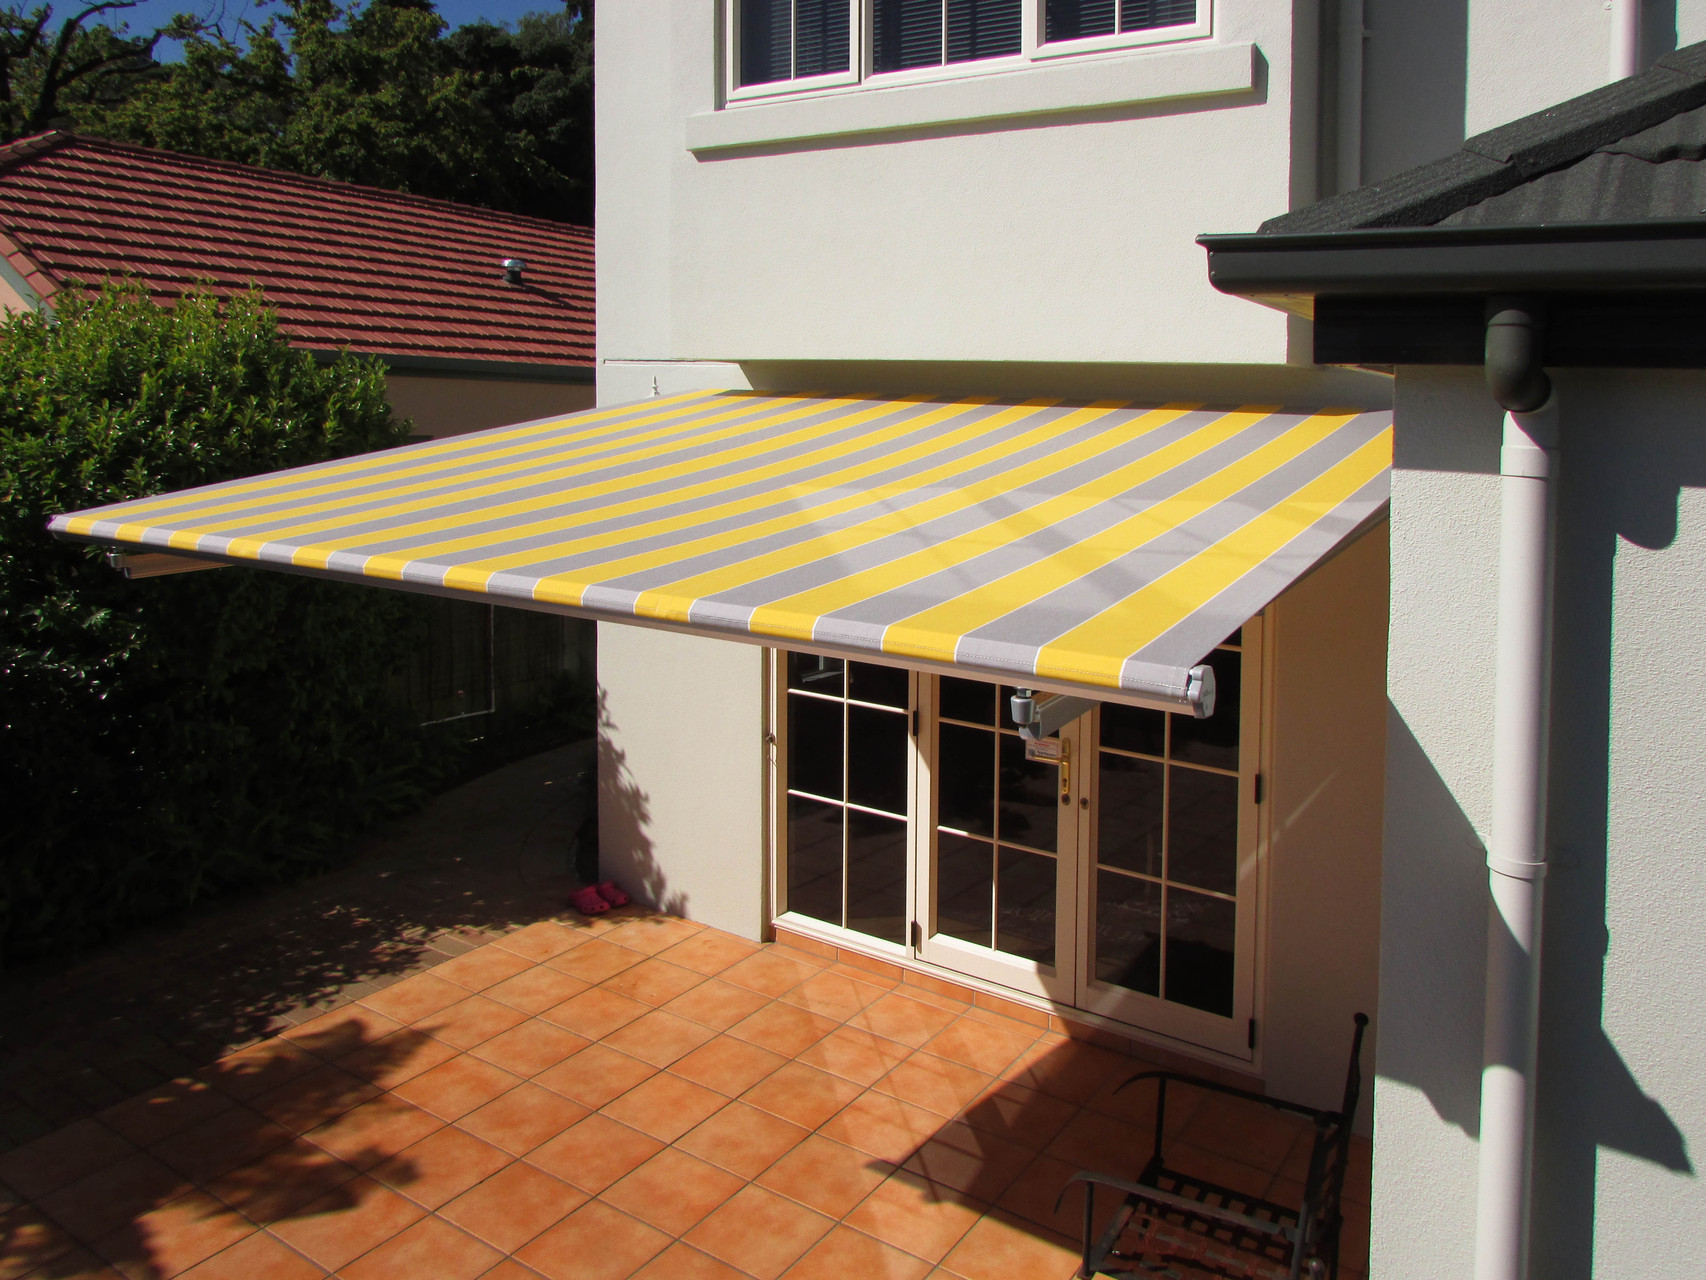 Sunbara Retractable Awning, Nelson, New Zealand